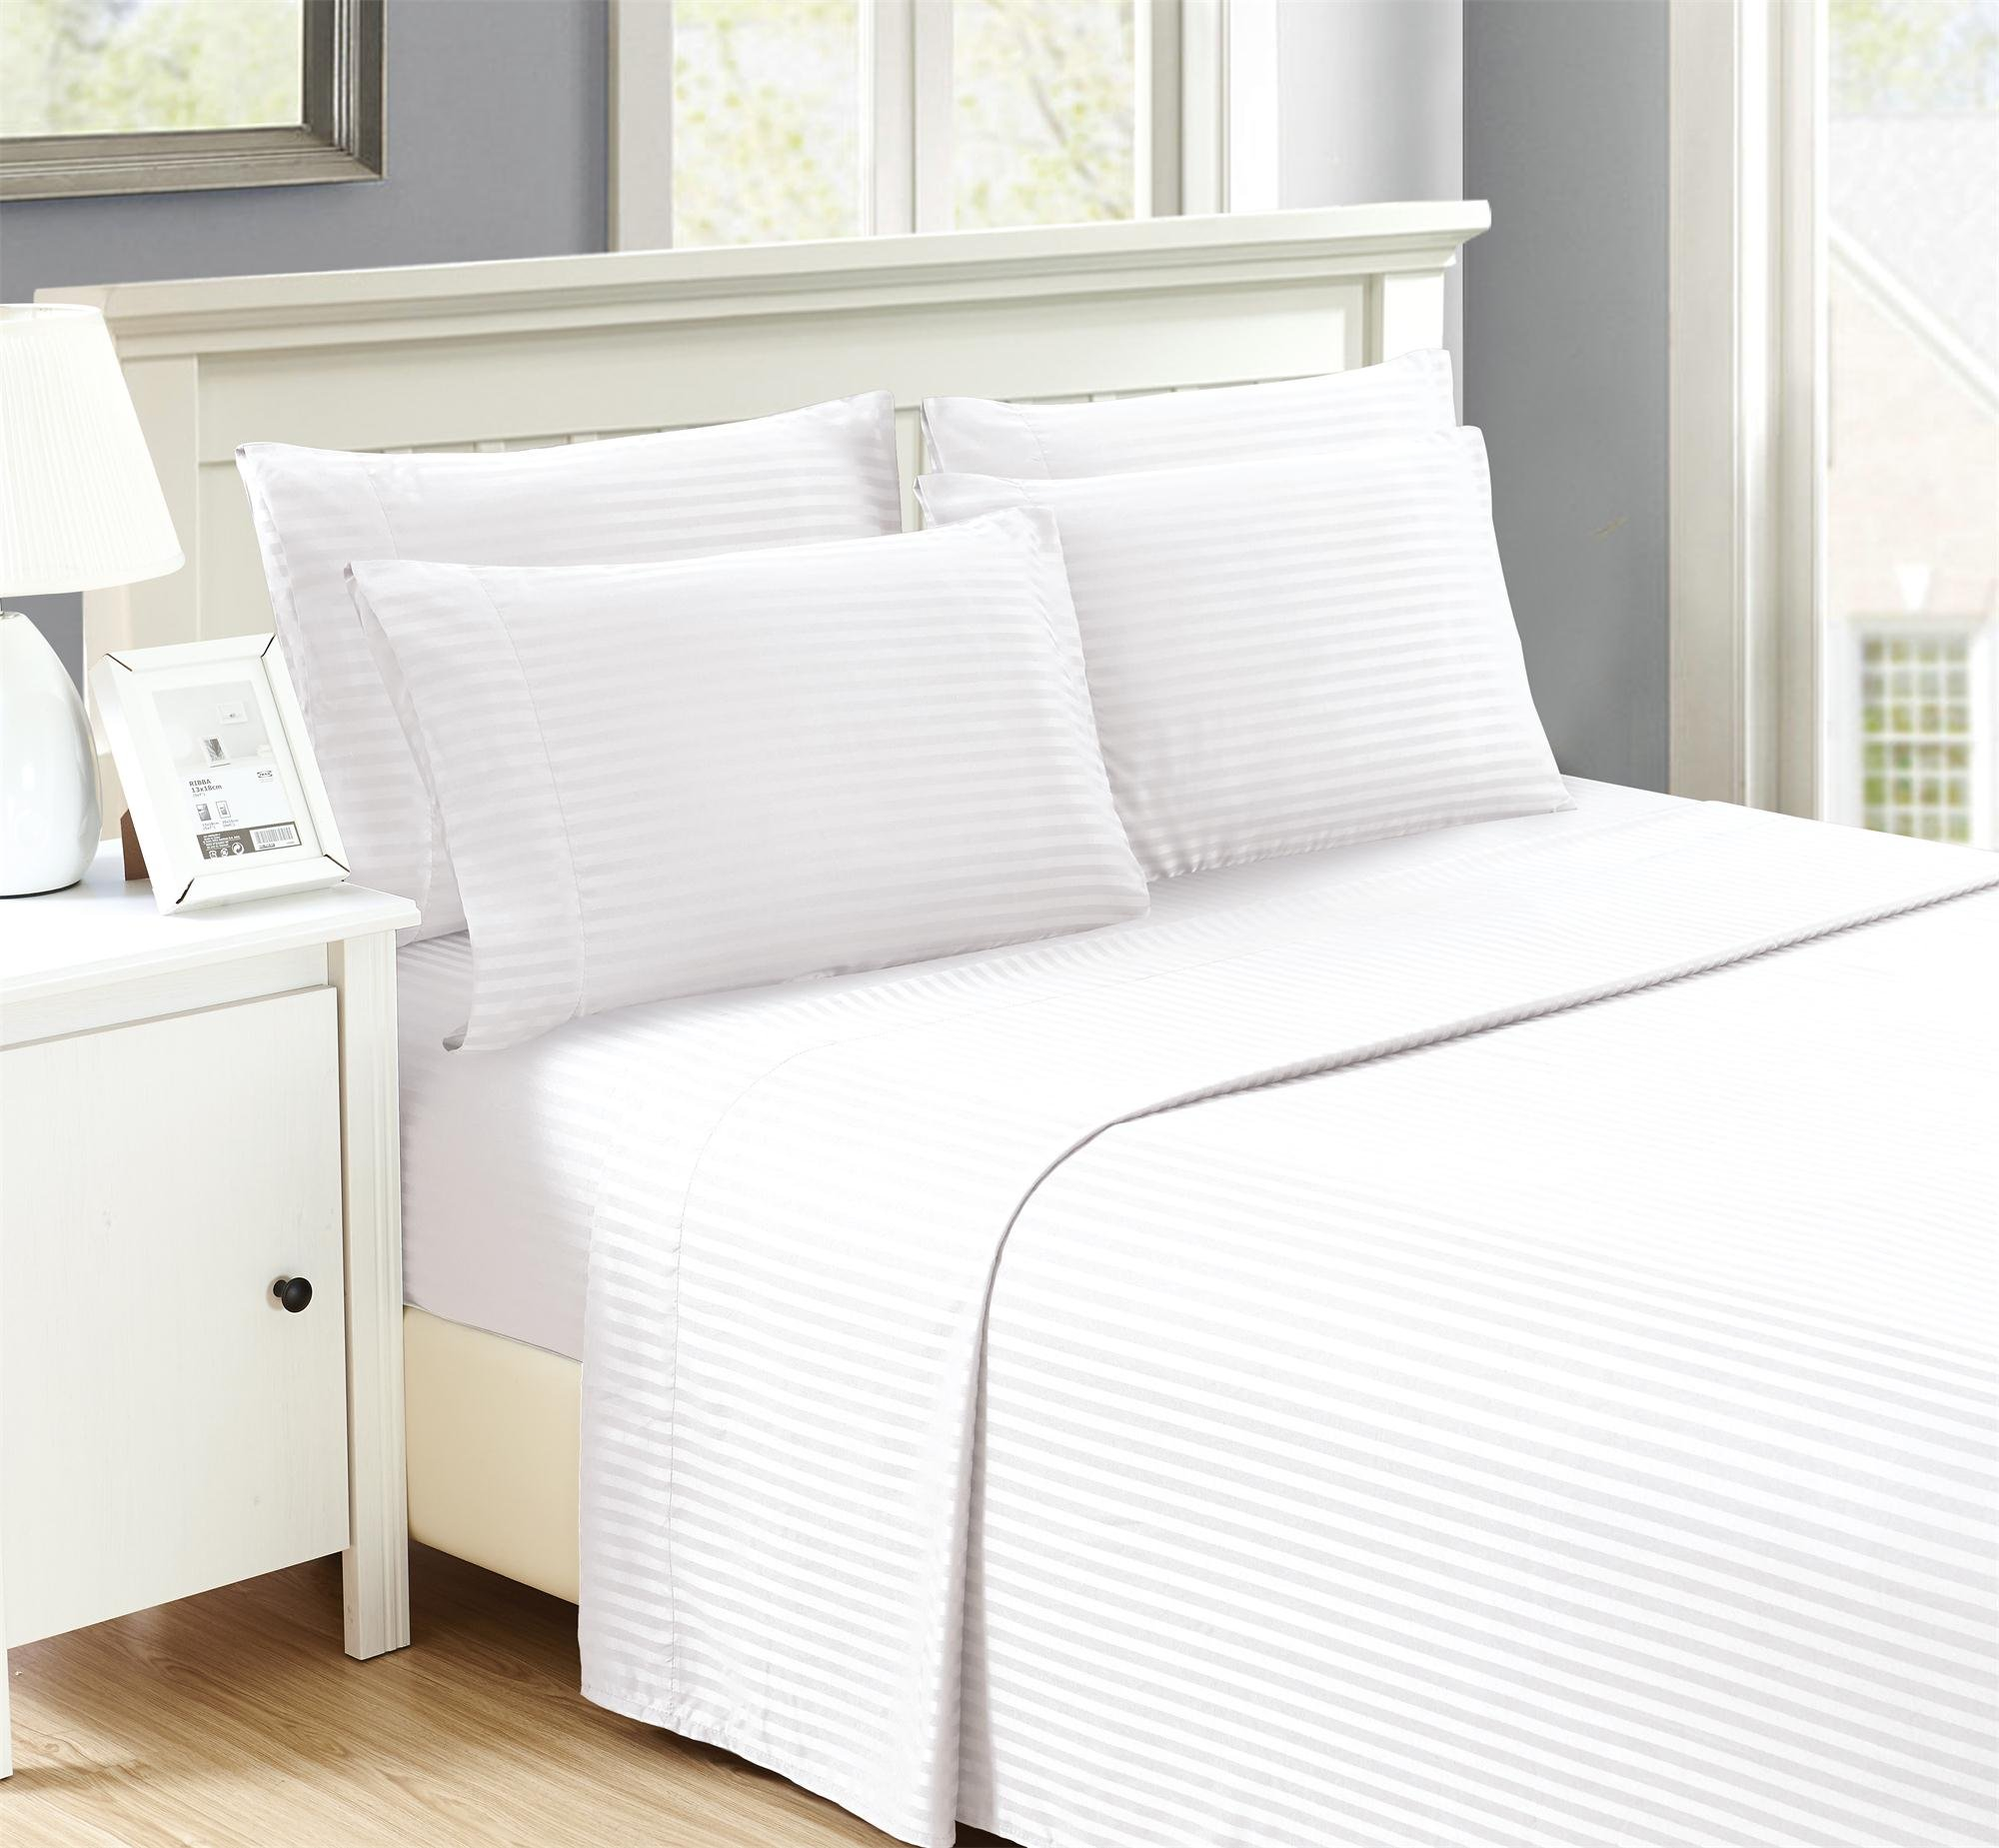 Brooklyn Chic Embossed Stripped 6 piece sheet sets Extra Pillow Cases Wrinkle Free, Stain Resistant, White Queen Microfiber by Brooklyn Chic